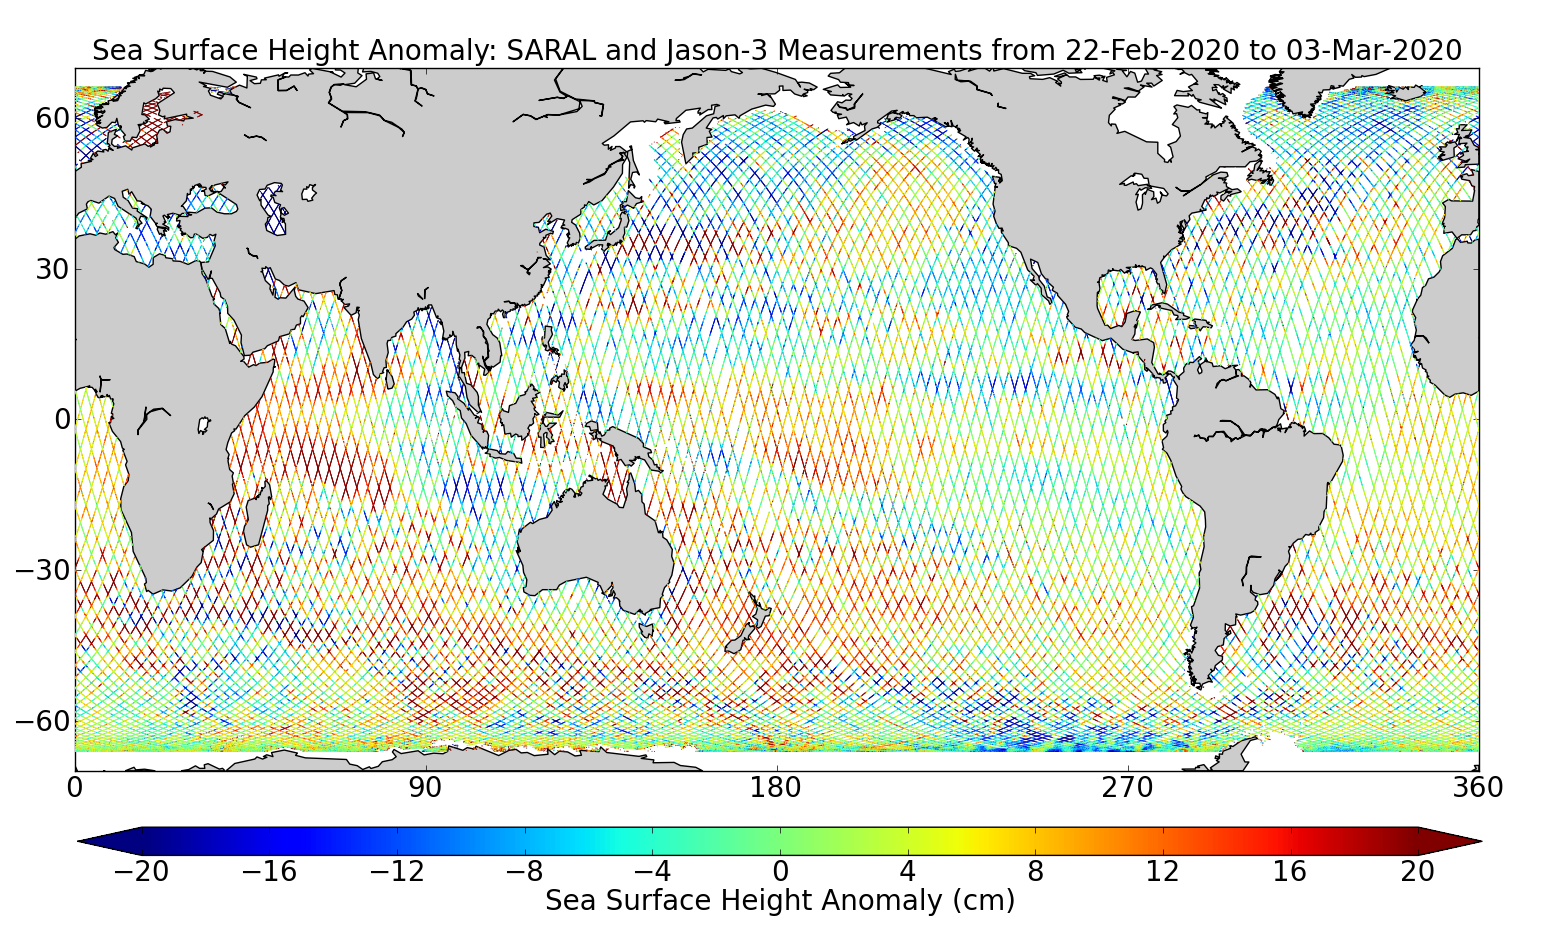 Sea Surface Height Anomaly: SARAL and Jason-3 Measurements from 22-Feb-2020 to 03-Mar-2020